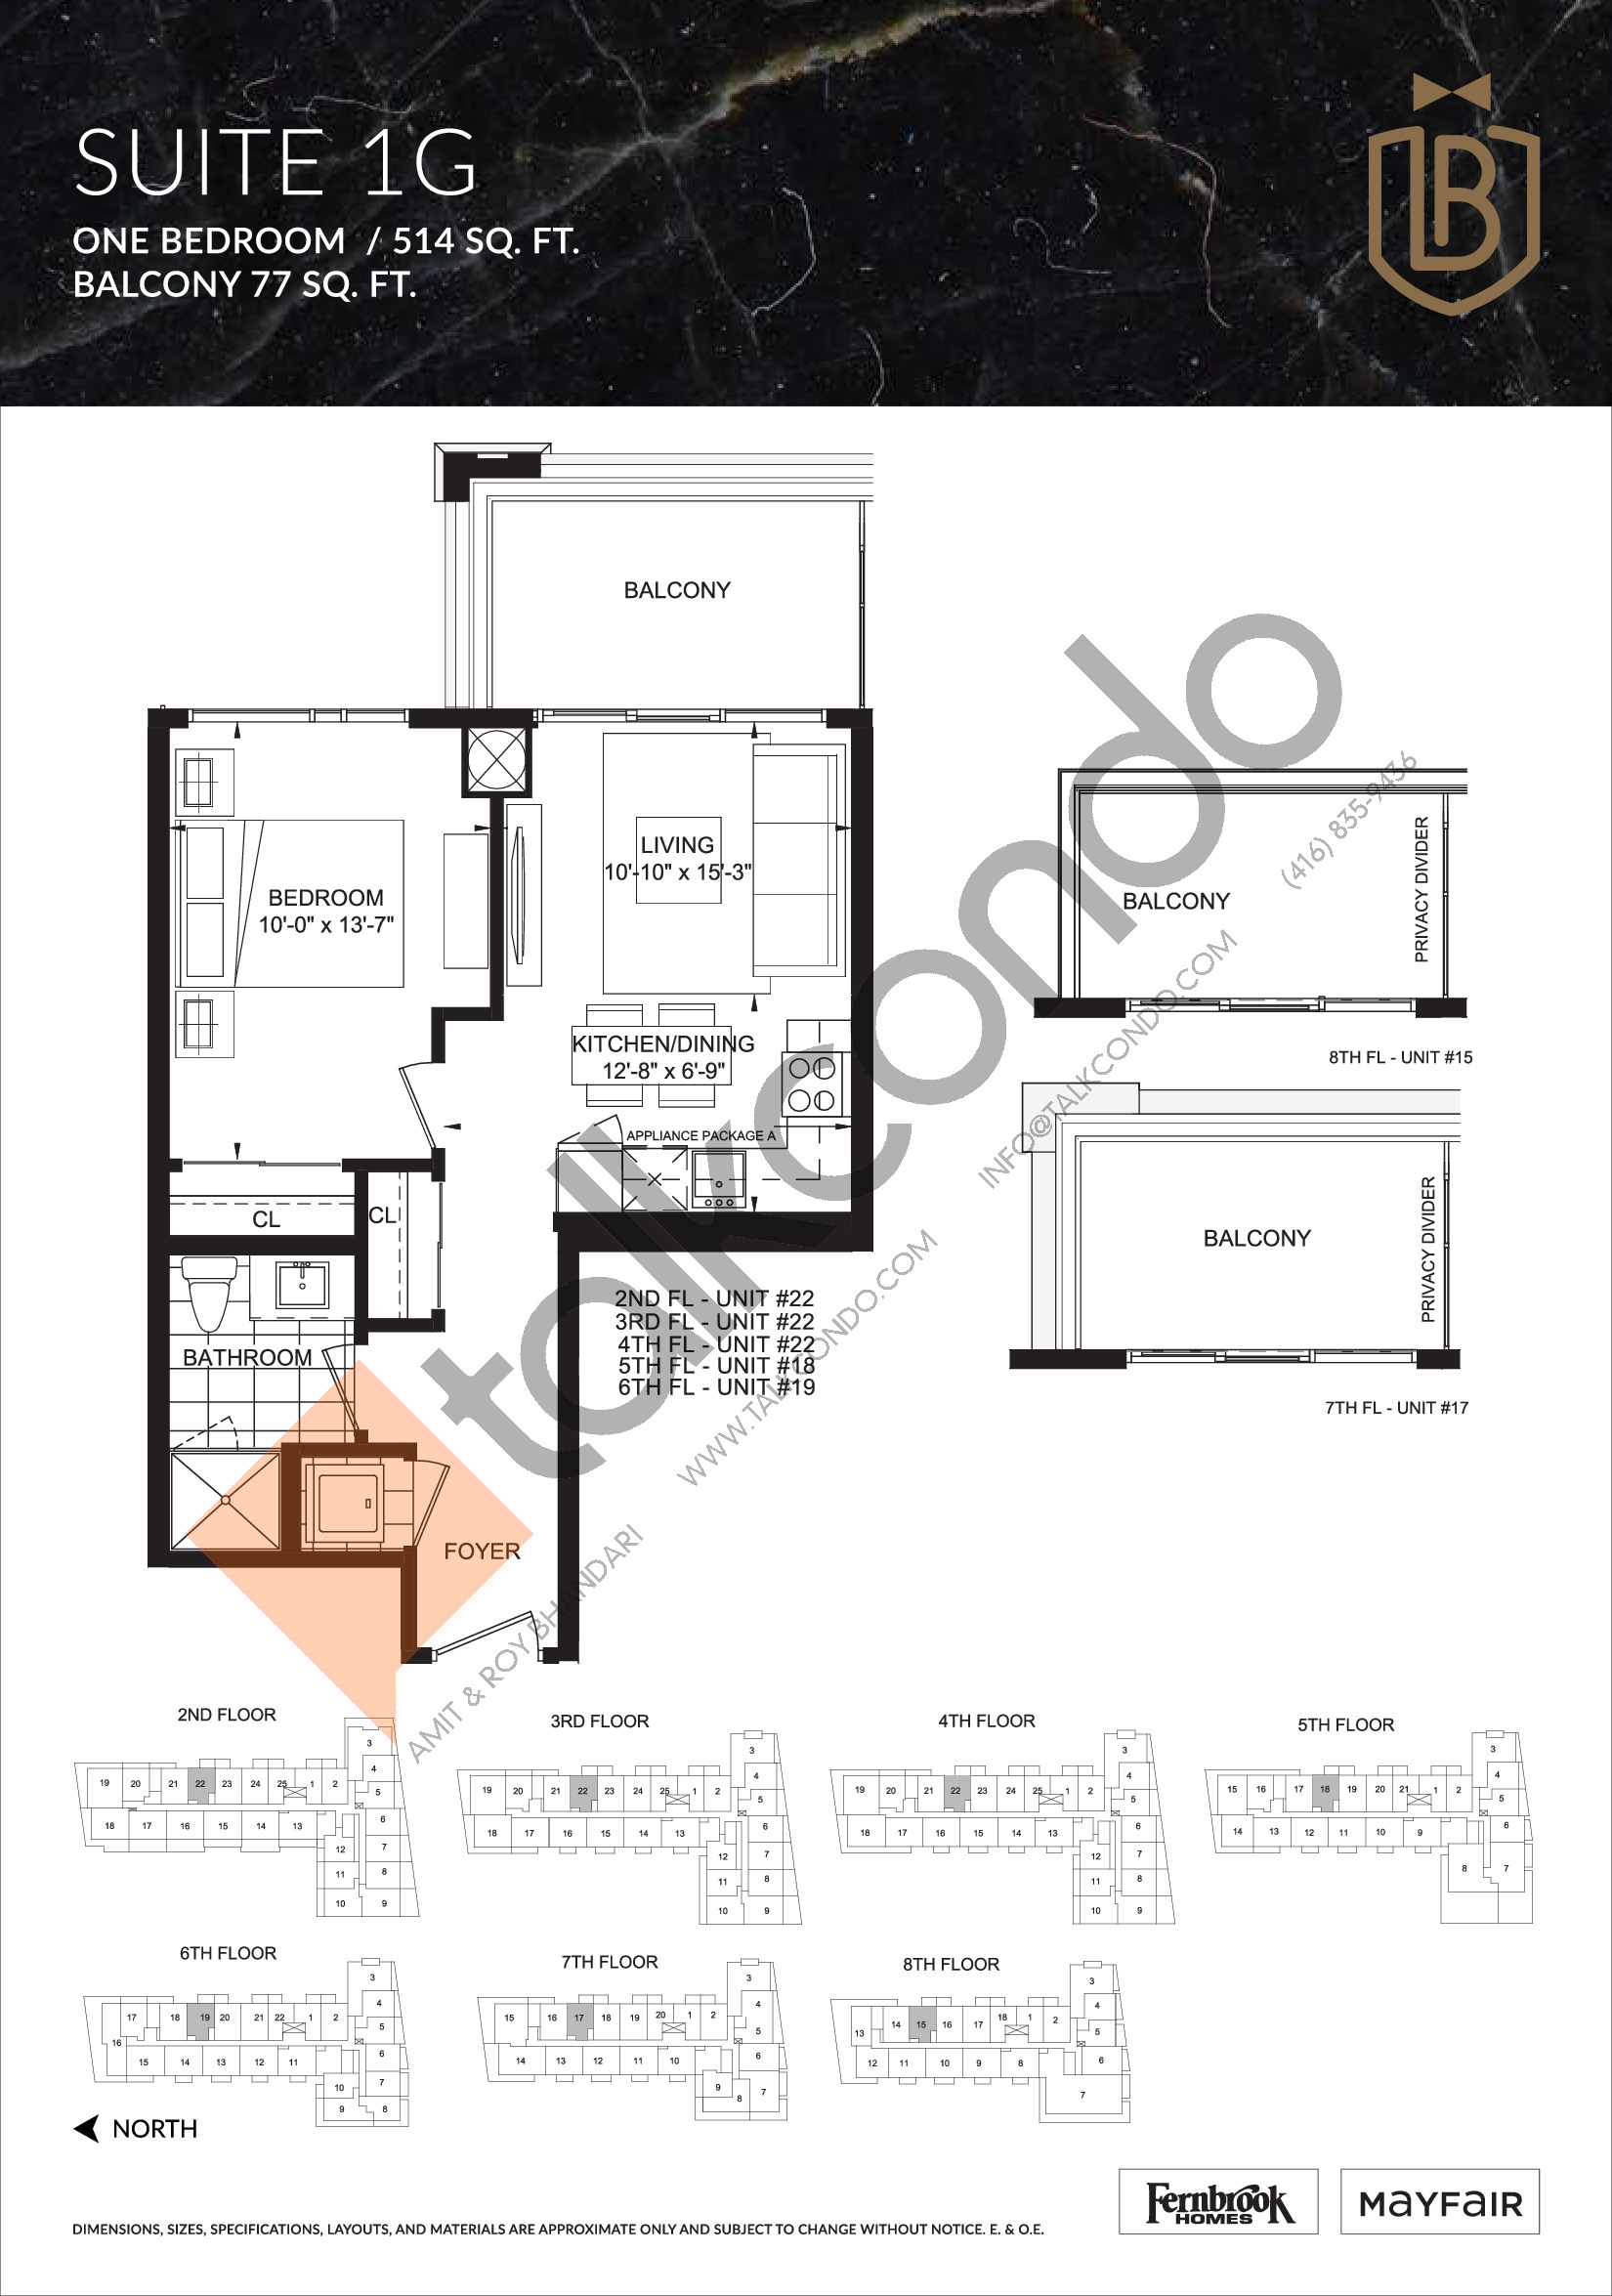 Suite 1G Floor Plan at The Butler Condos - 514 sq.ft